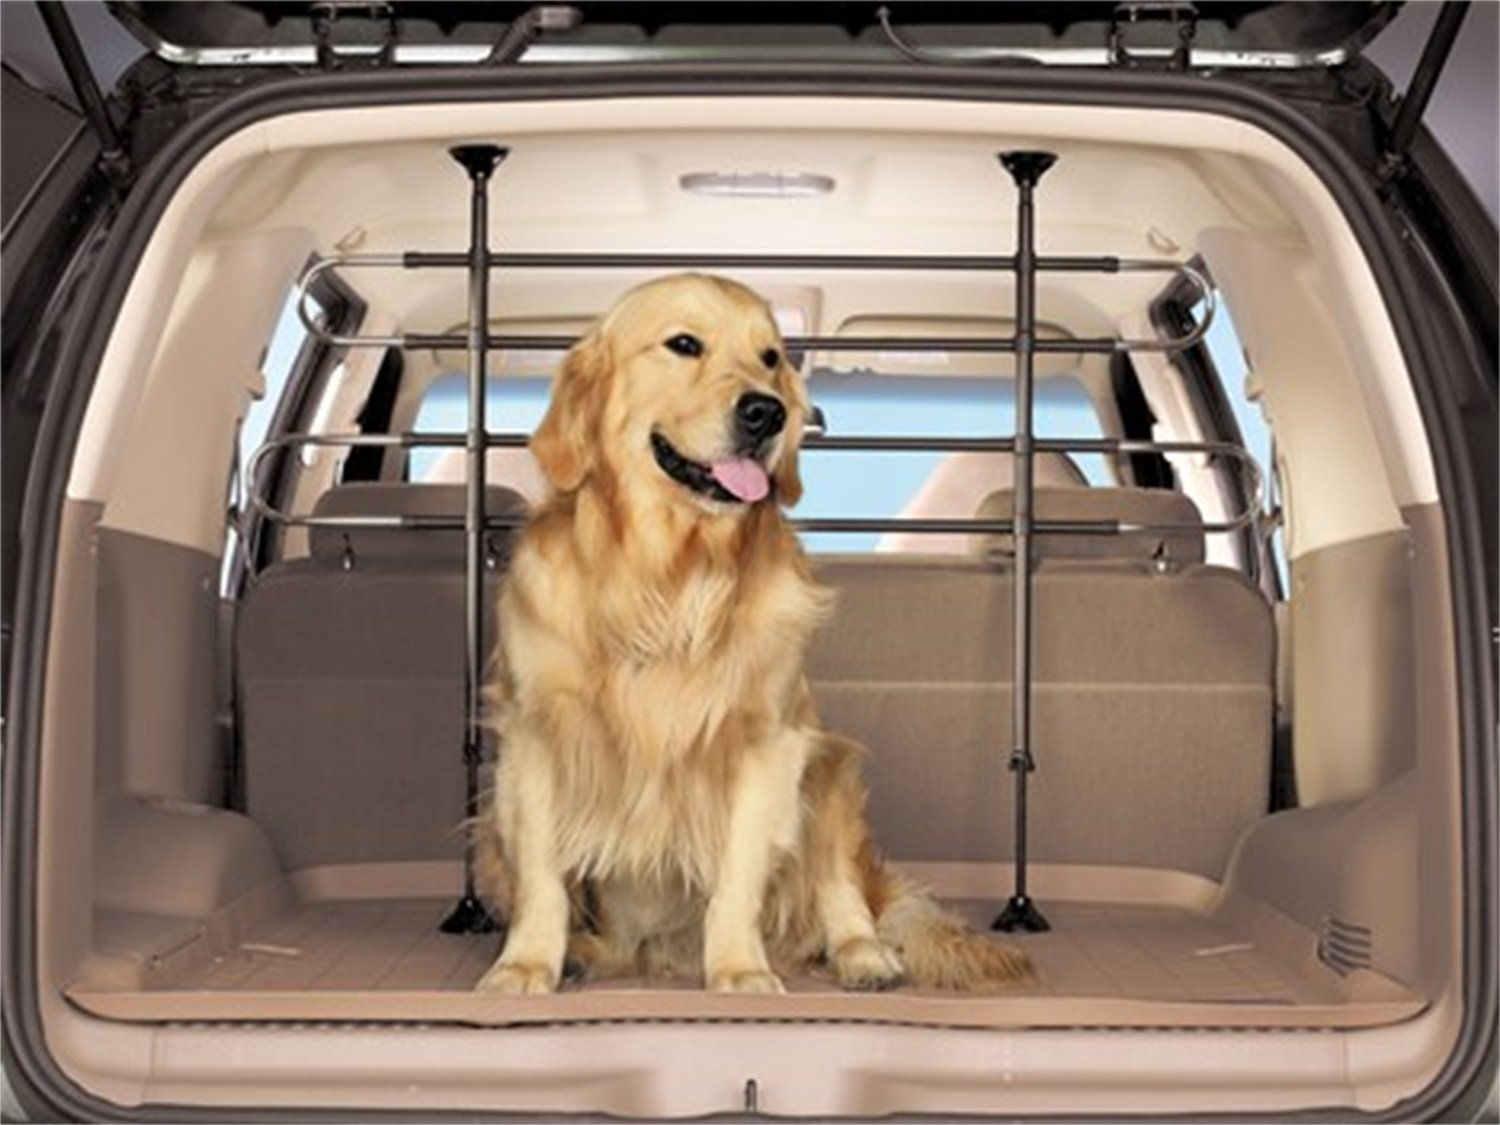 WeatherTech Tubular Pet Barrier